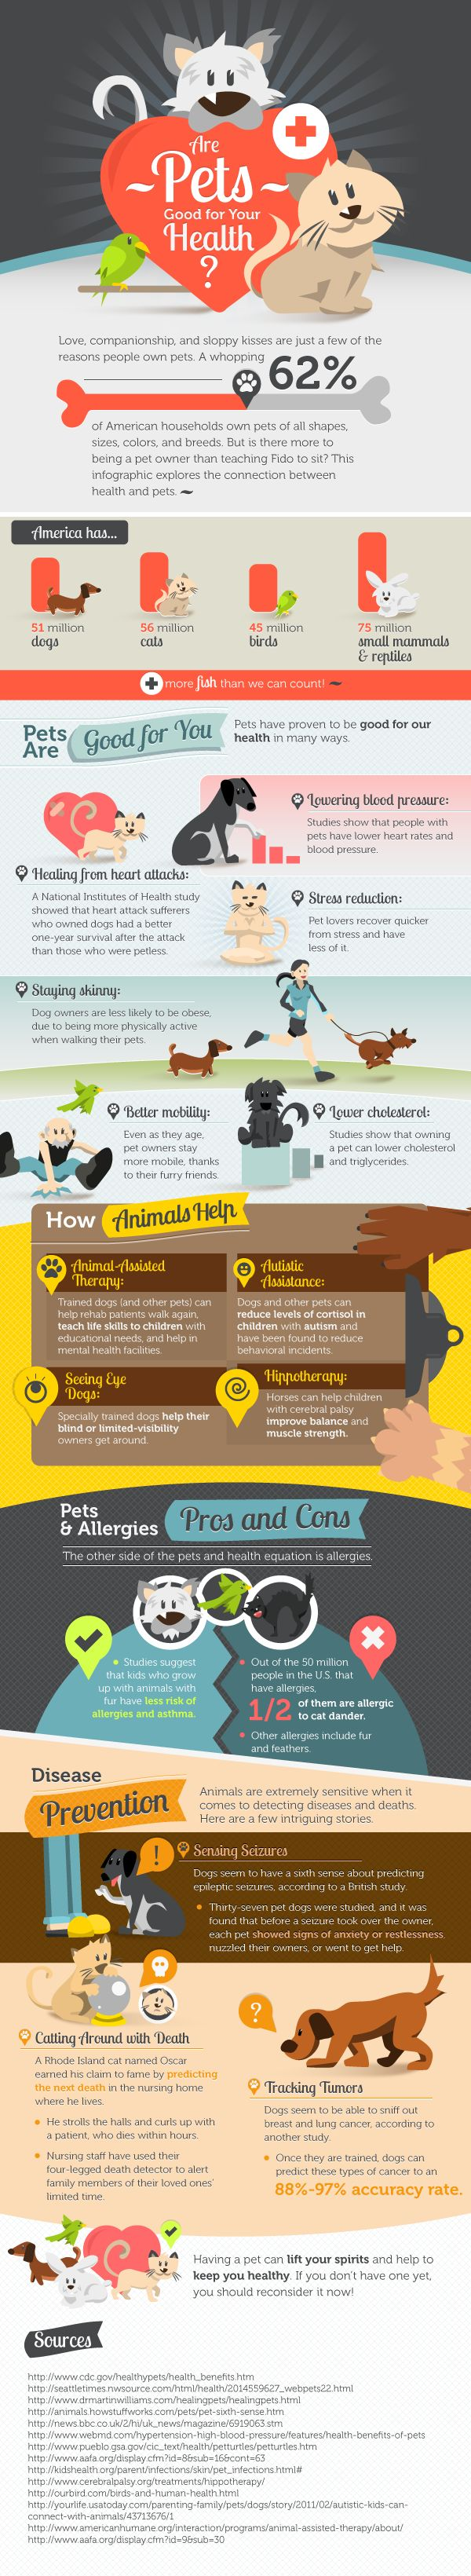 In honor of national dog day (August 26, 2014) check out this infographic about the benefits of pet ownership